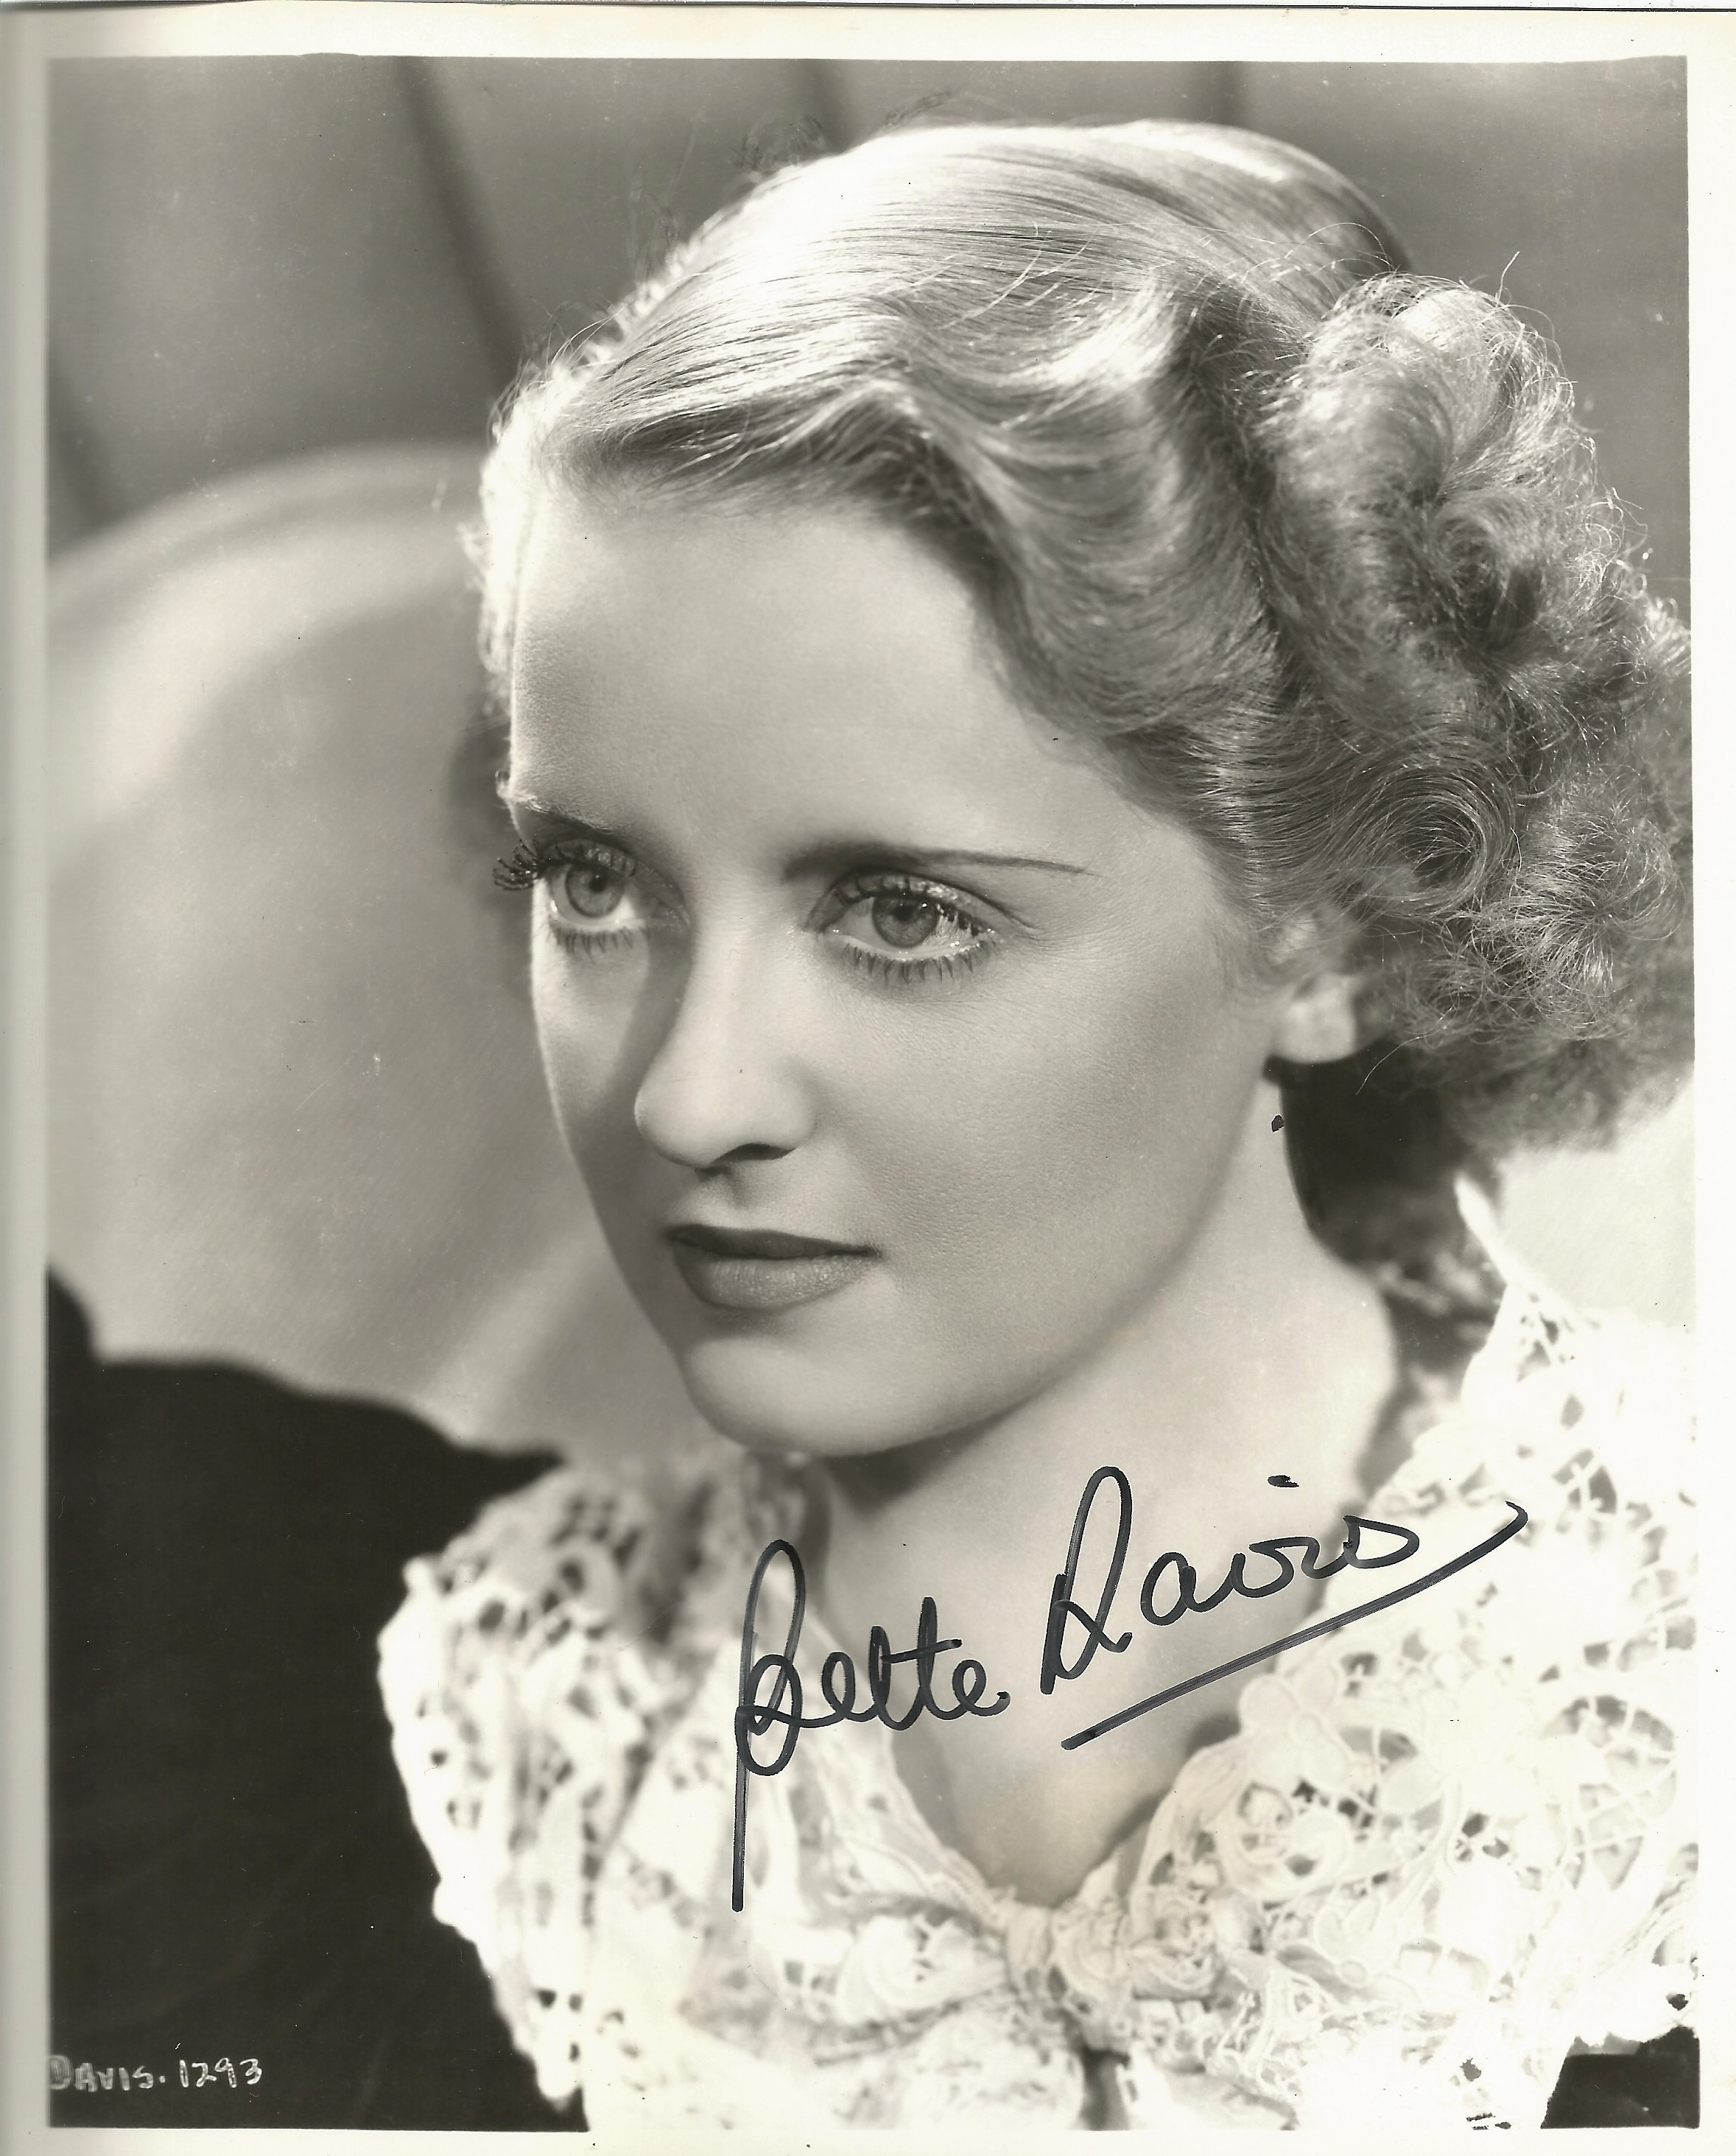 Bette Davis very early signed 10x8 black and white photo, scarce early image. Signature is in